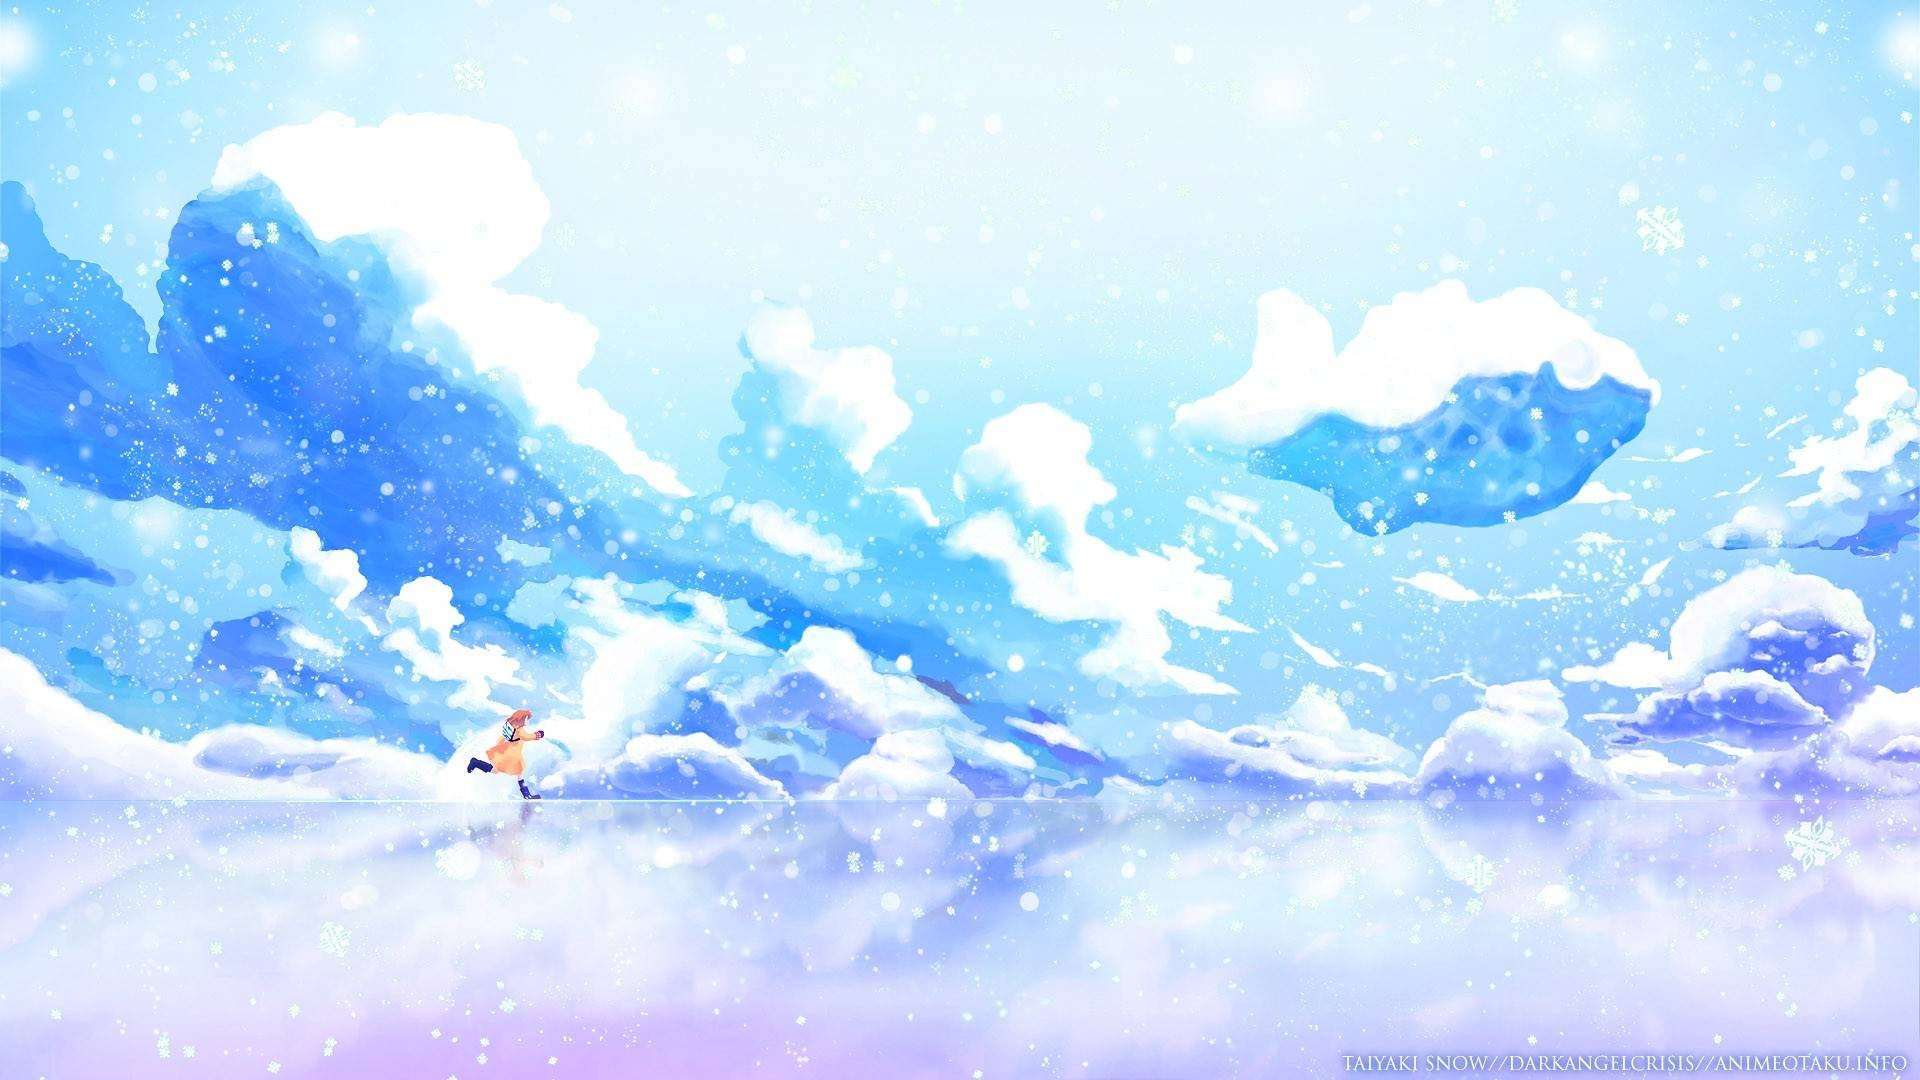 Kanon, Snow, Lonely, Clouds